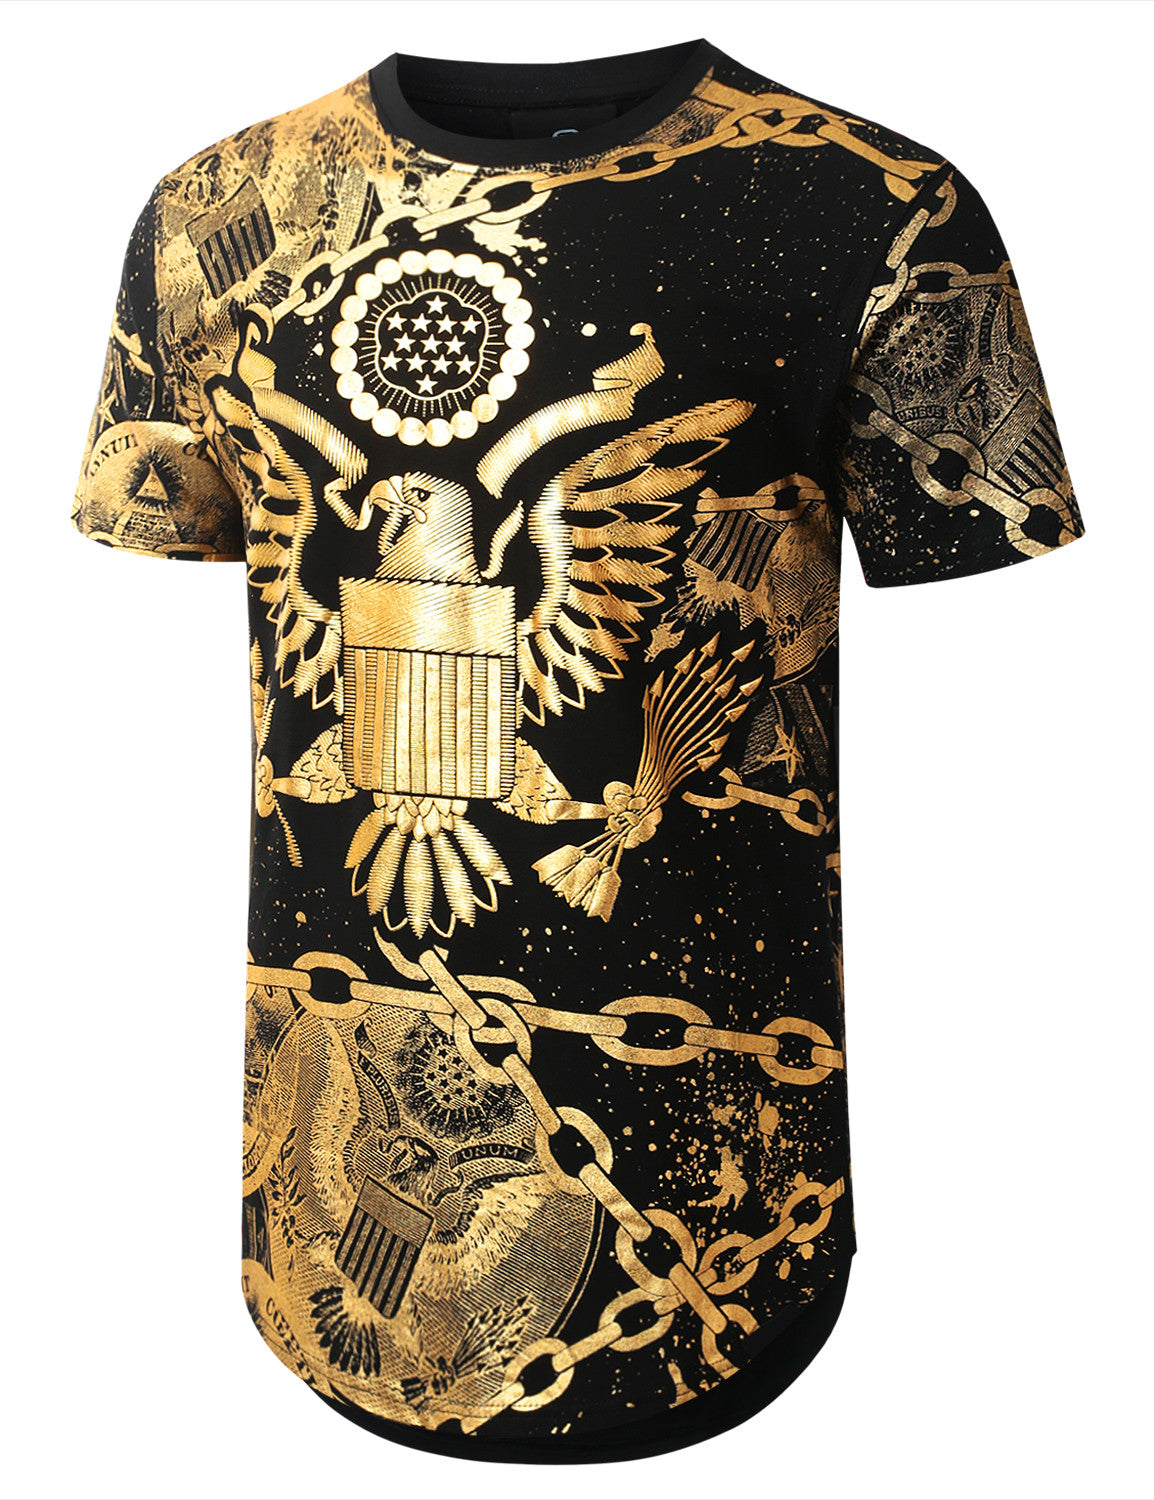 BLACK Gold Foil Chain Graphic Longline T-shirt - URBANCREWS